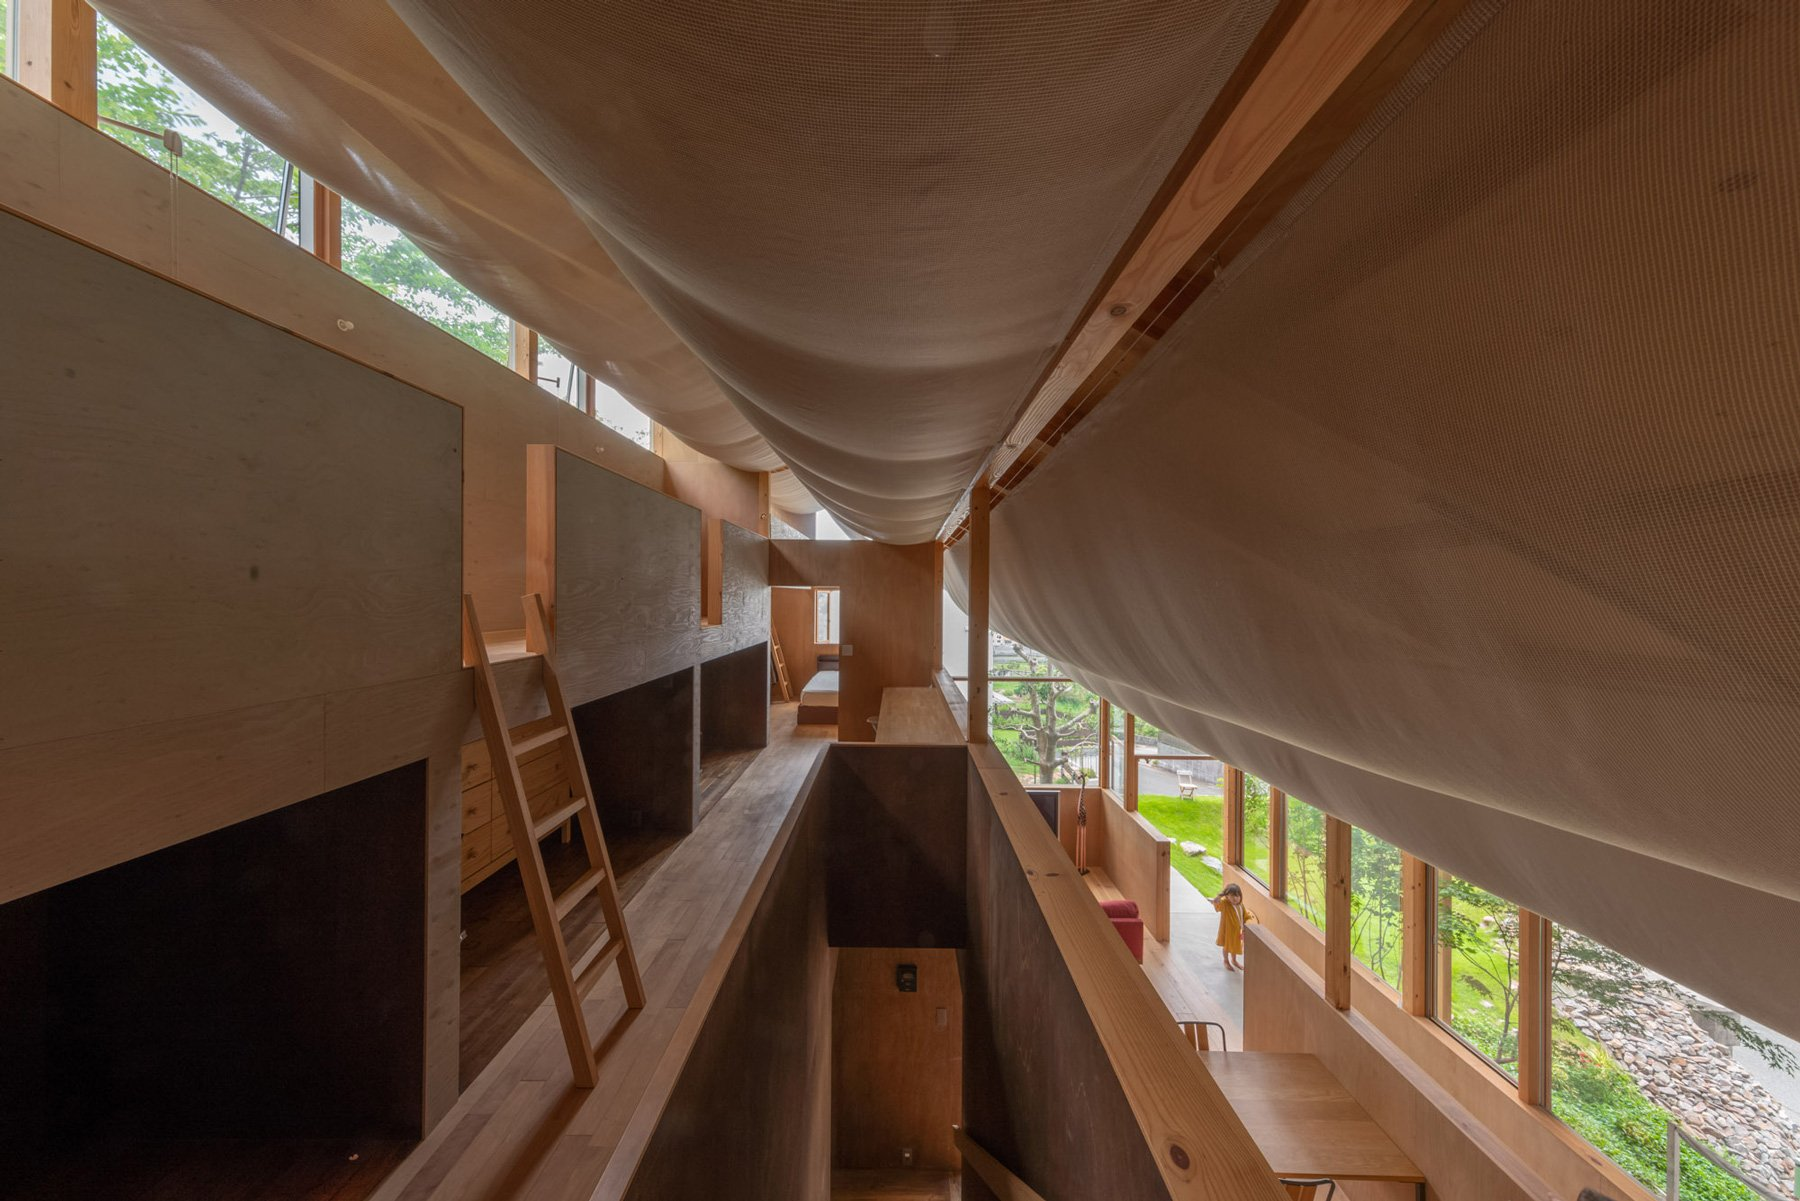 takayuki suzuki architecture atelier drapes sheer fabric across the ceiling of japanese house